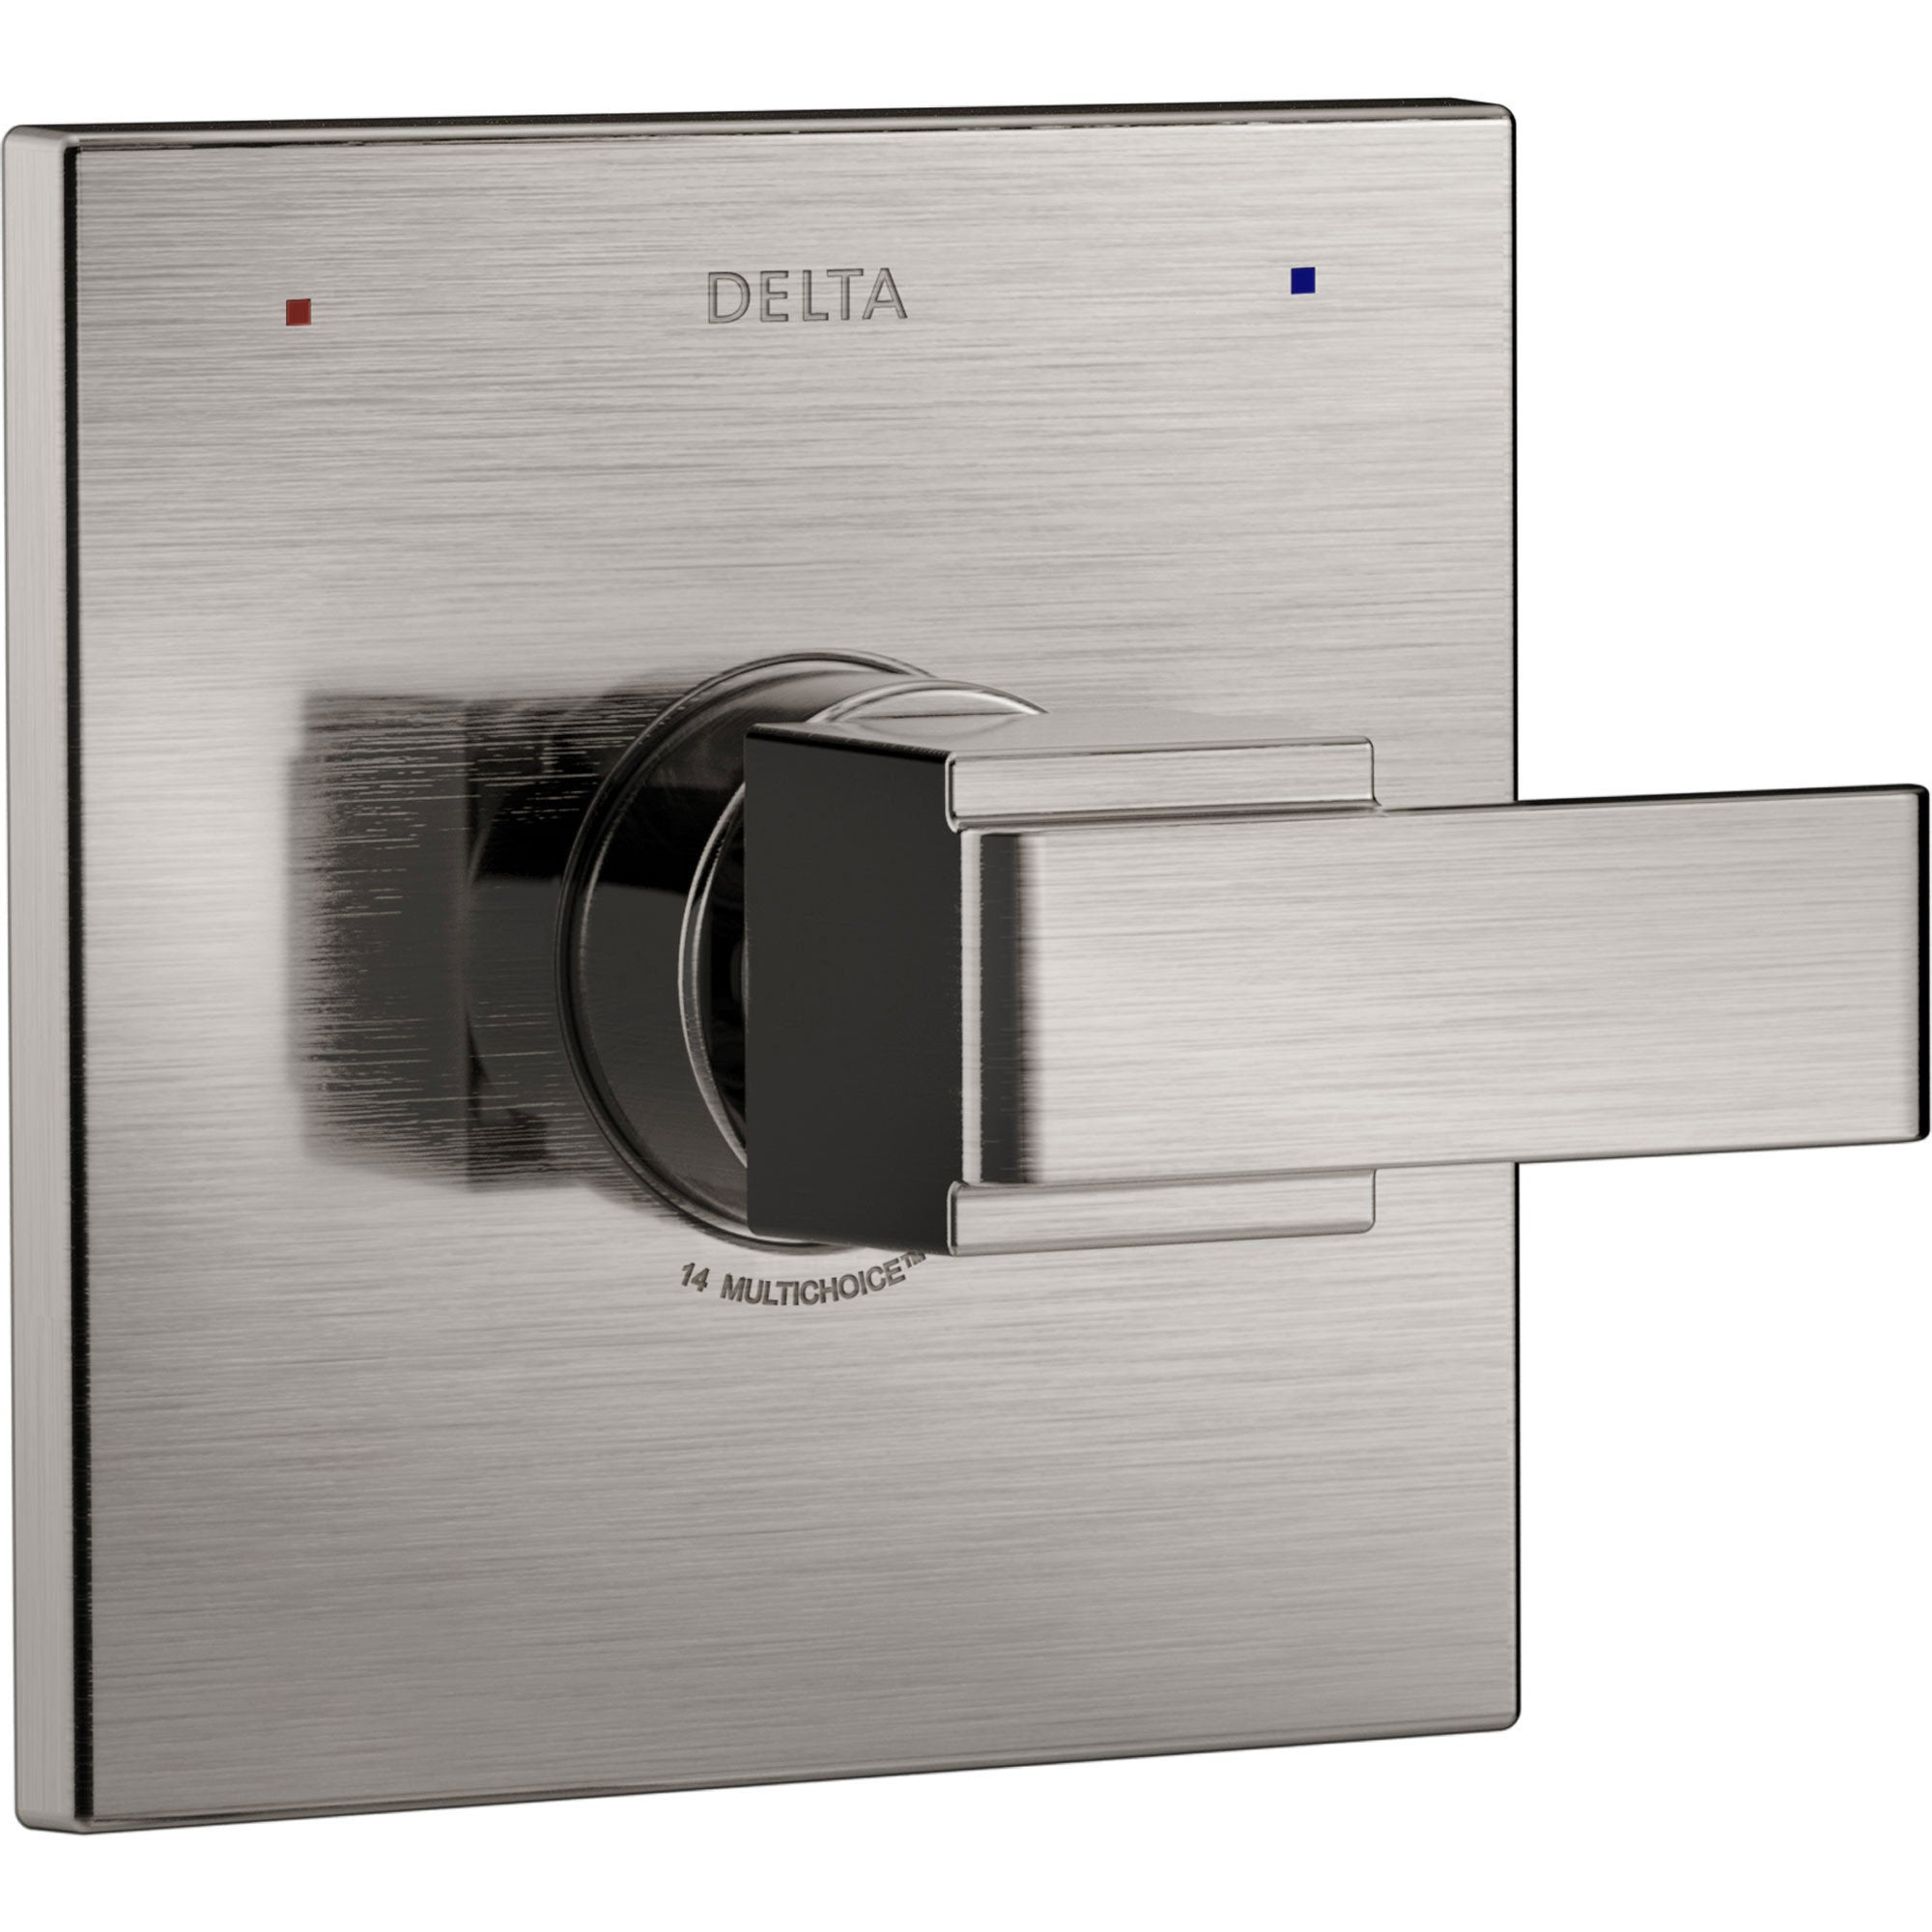 Delta Ara Modern Monitor 14 Series Stainless Steel Finish Square Single Handle Pressure Balanced Shower Faucet Control INCLUDES Rough-in Valve with Stops D1253V